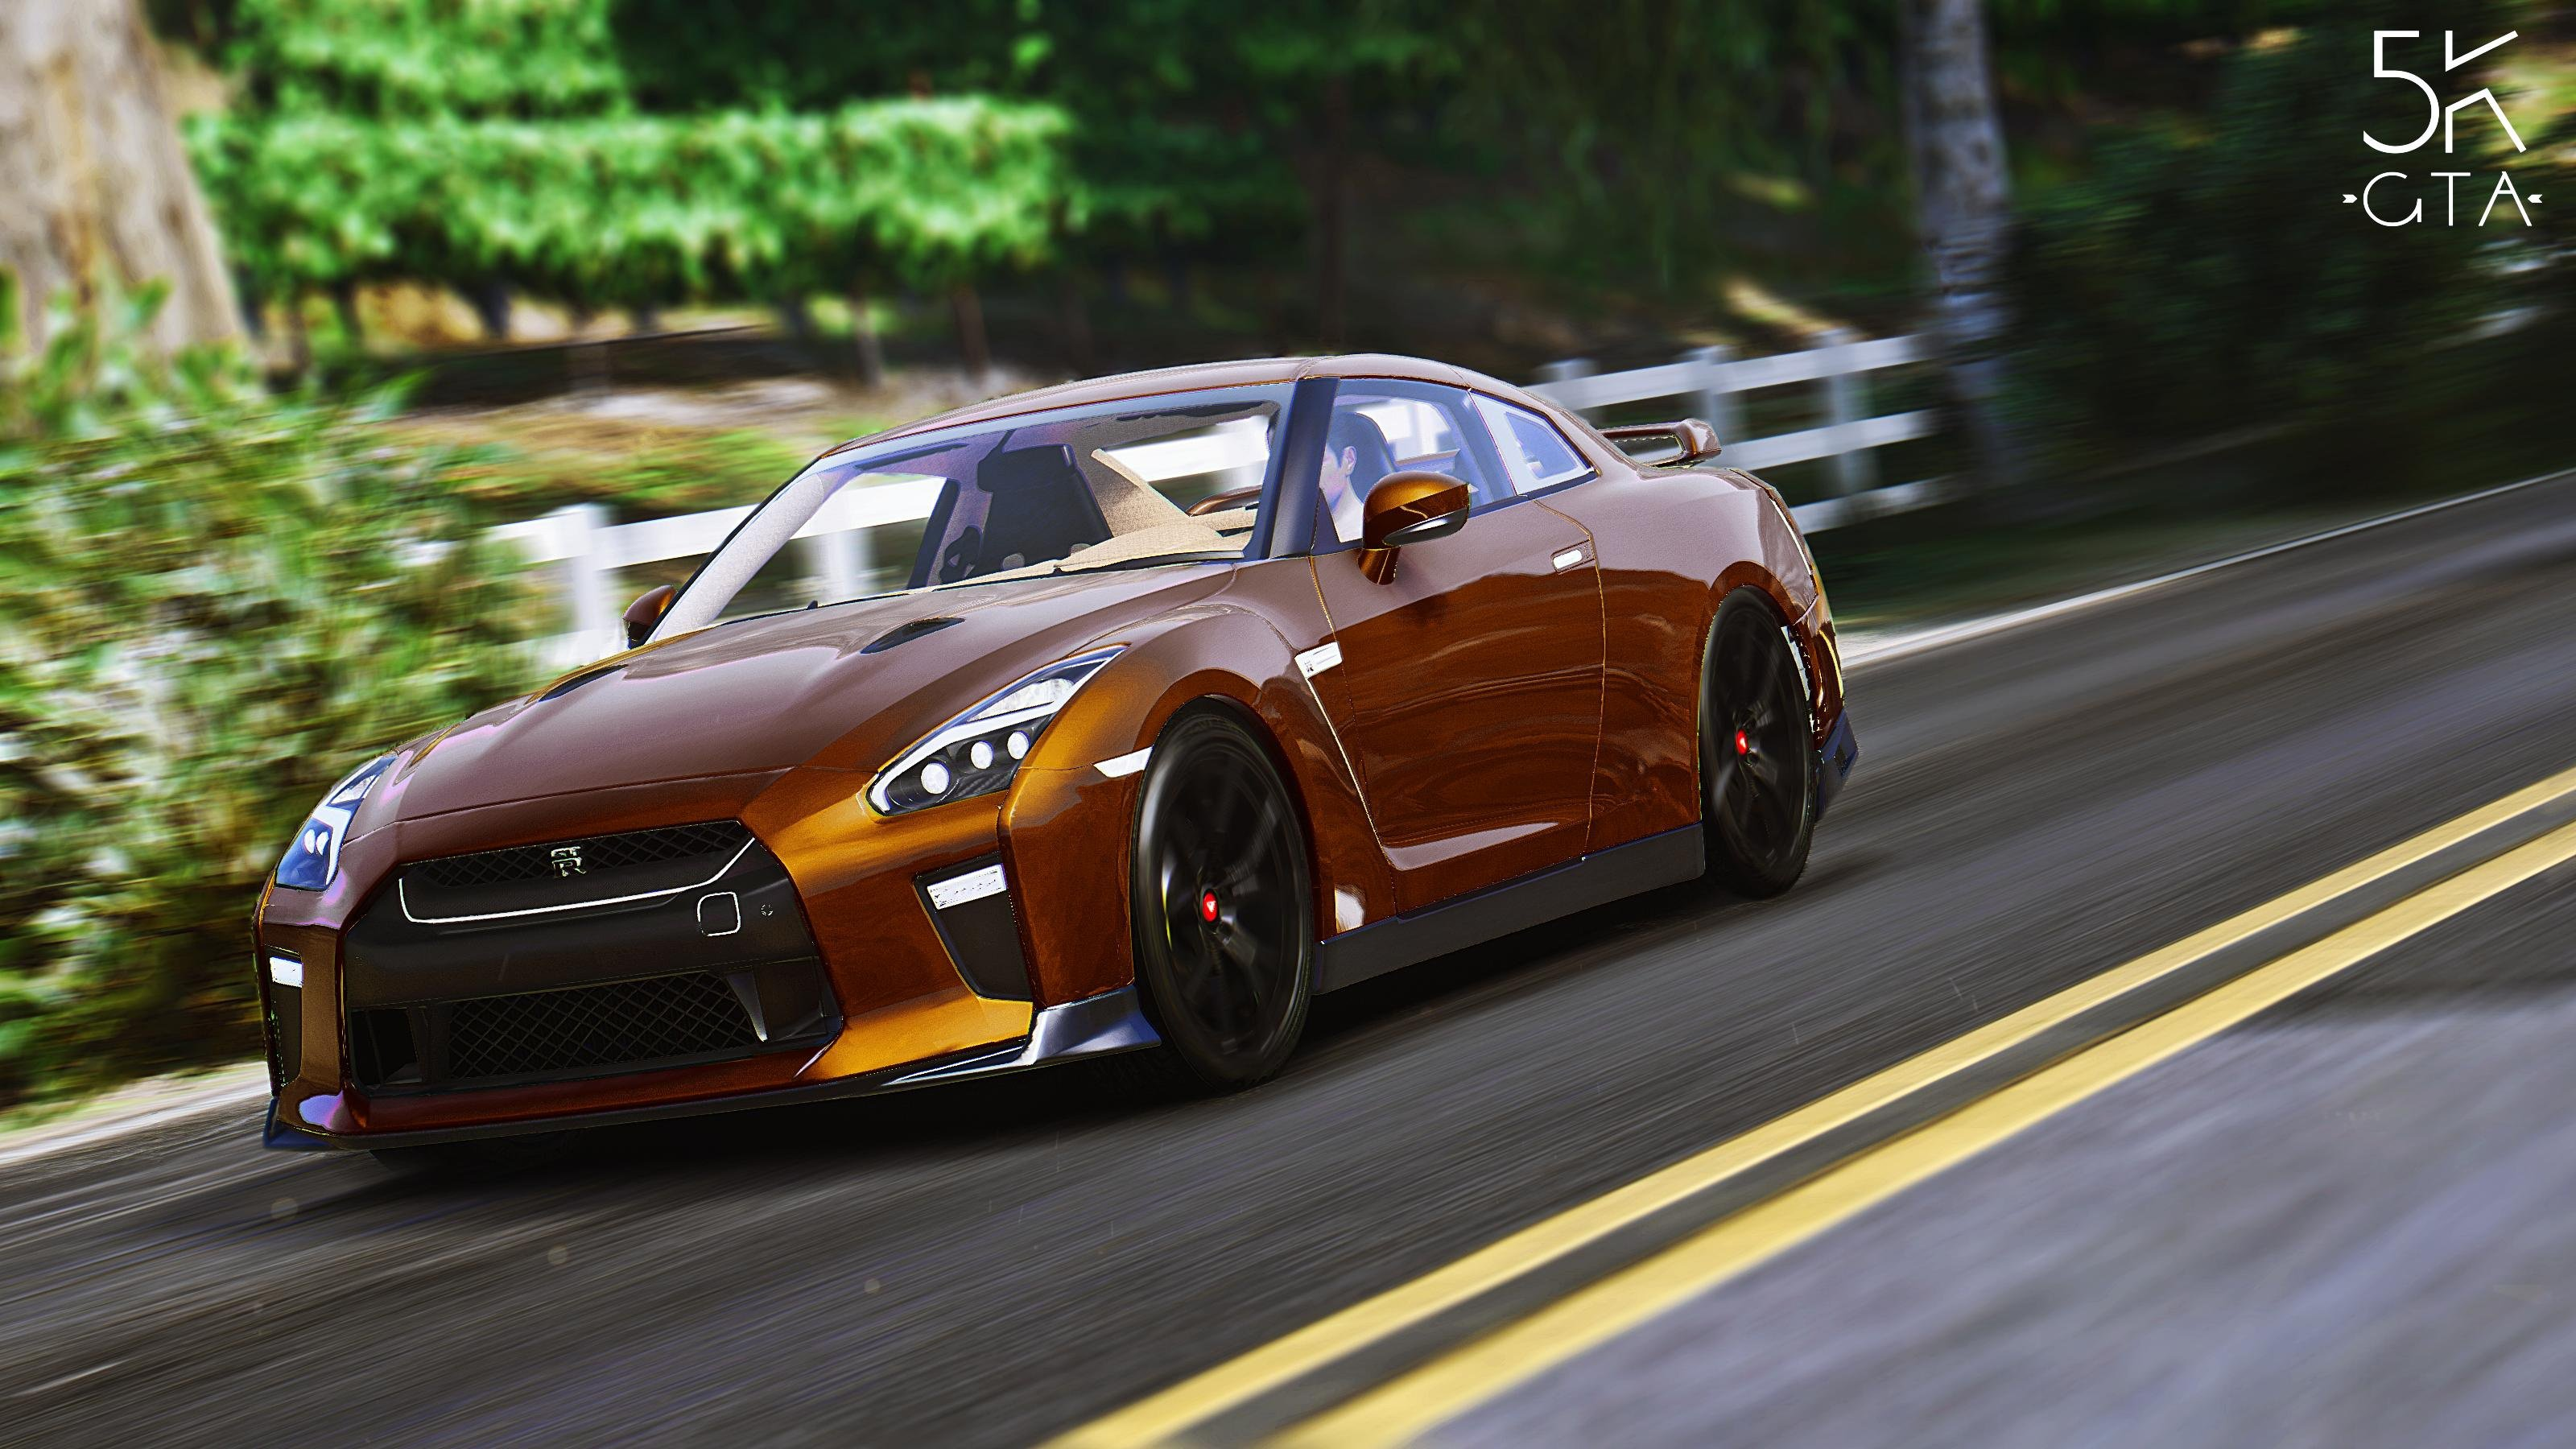 Nissan gtr 2017 tuning vehicules pour gta v sur gta for Fond ecran tuning